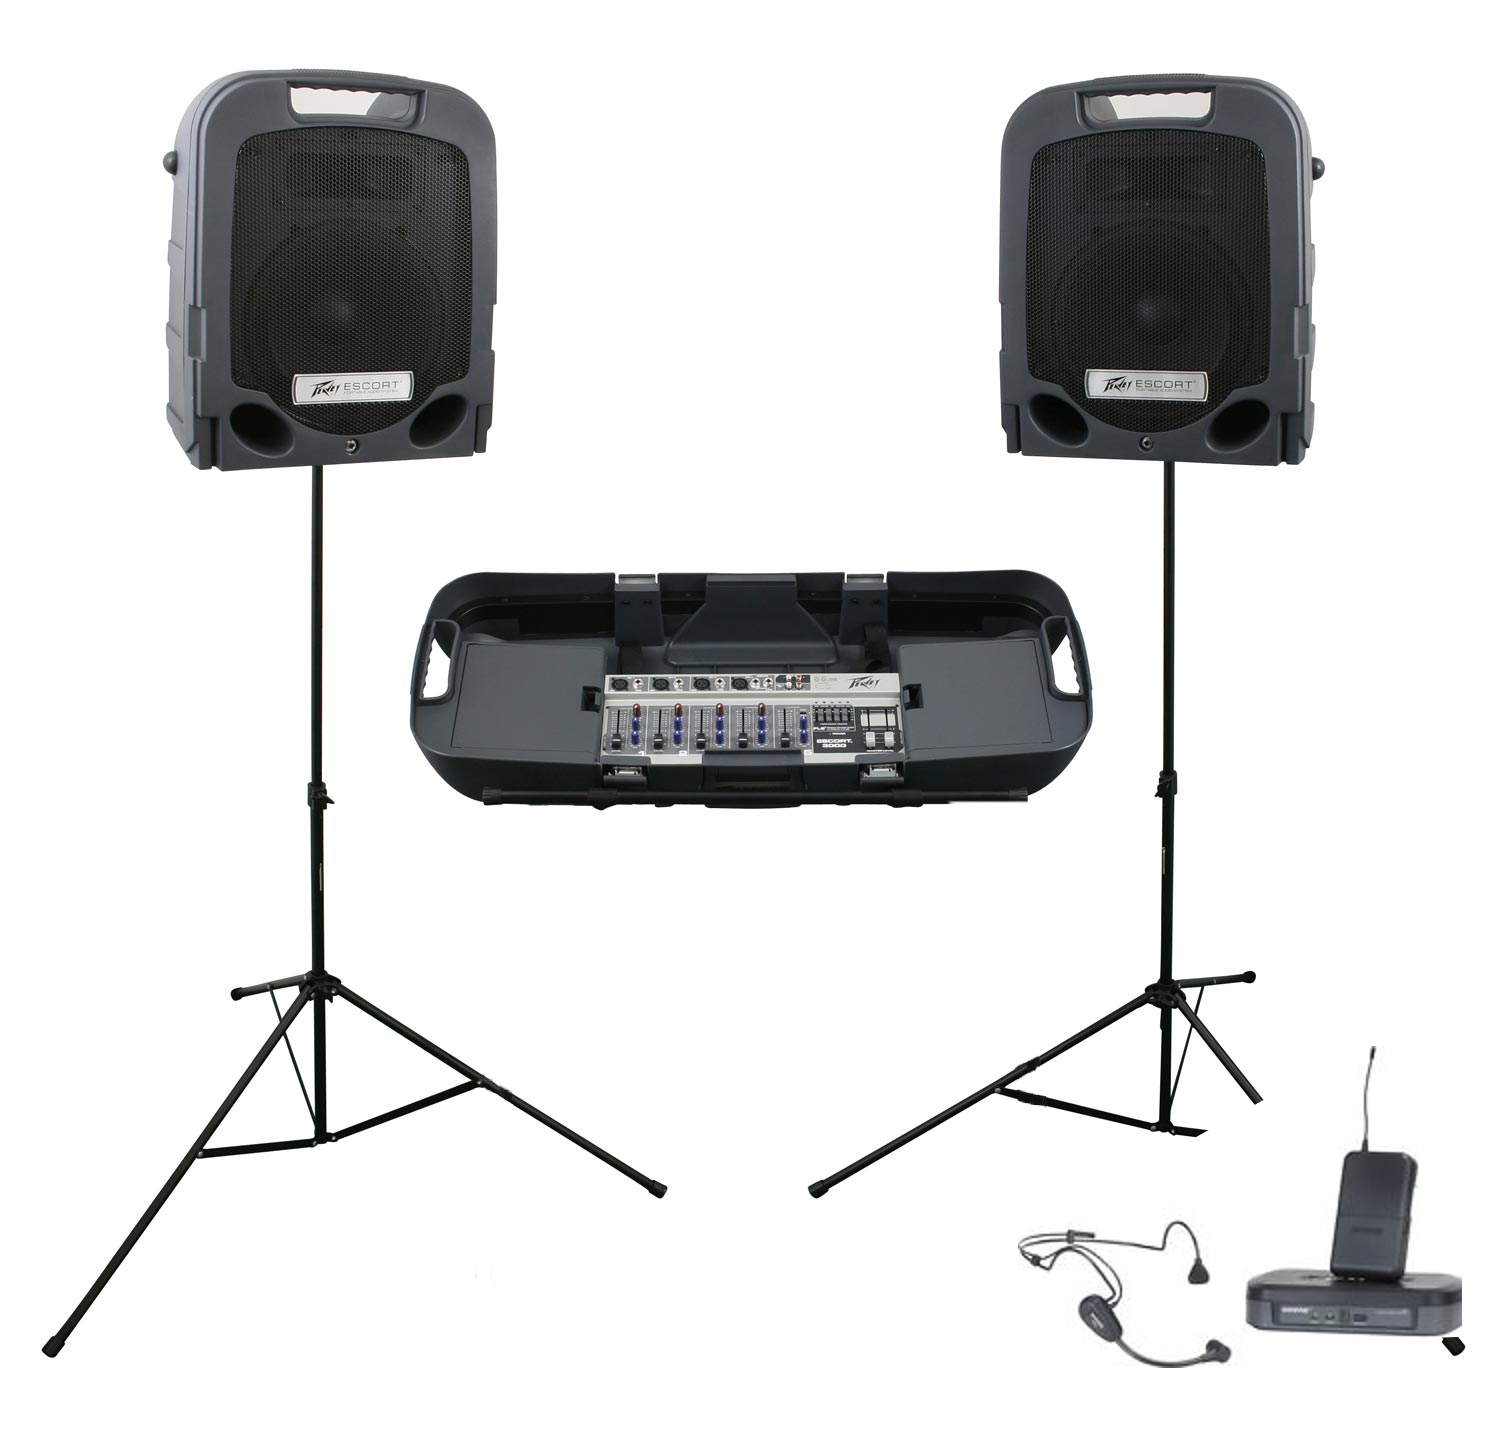 Peavey Escort 3000 And Microphone Shure Pg14 Pg 30 Fit